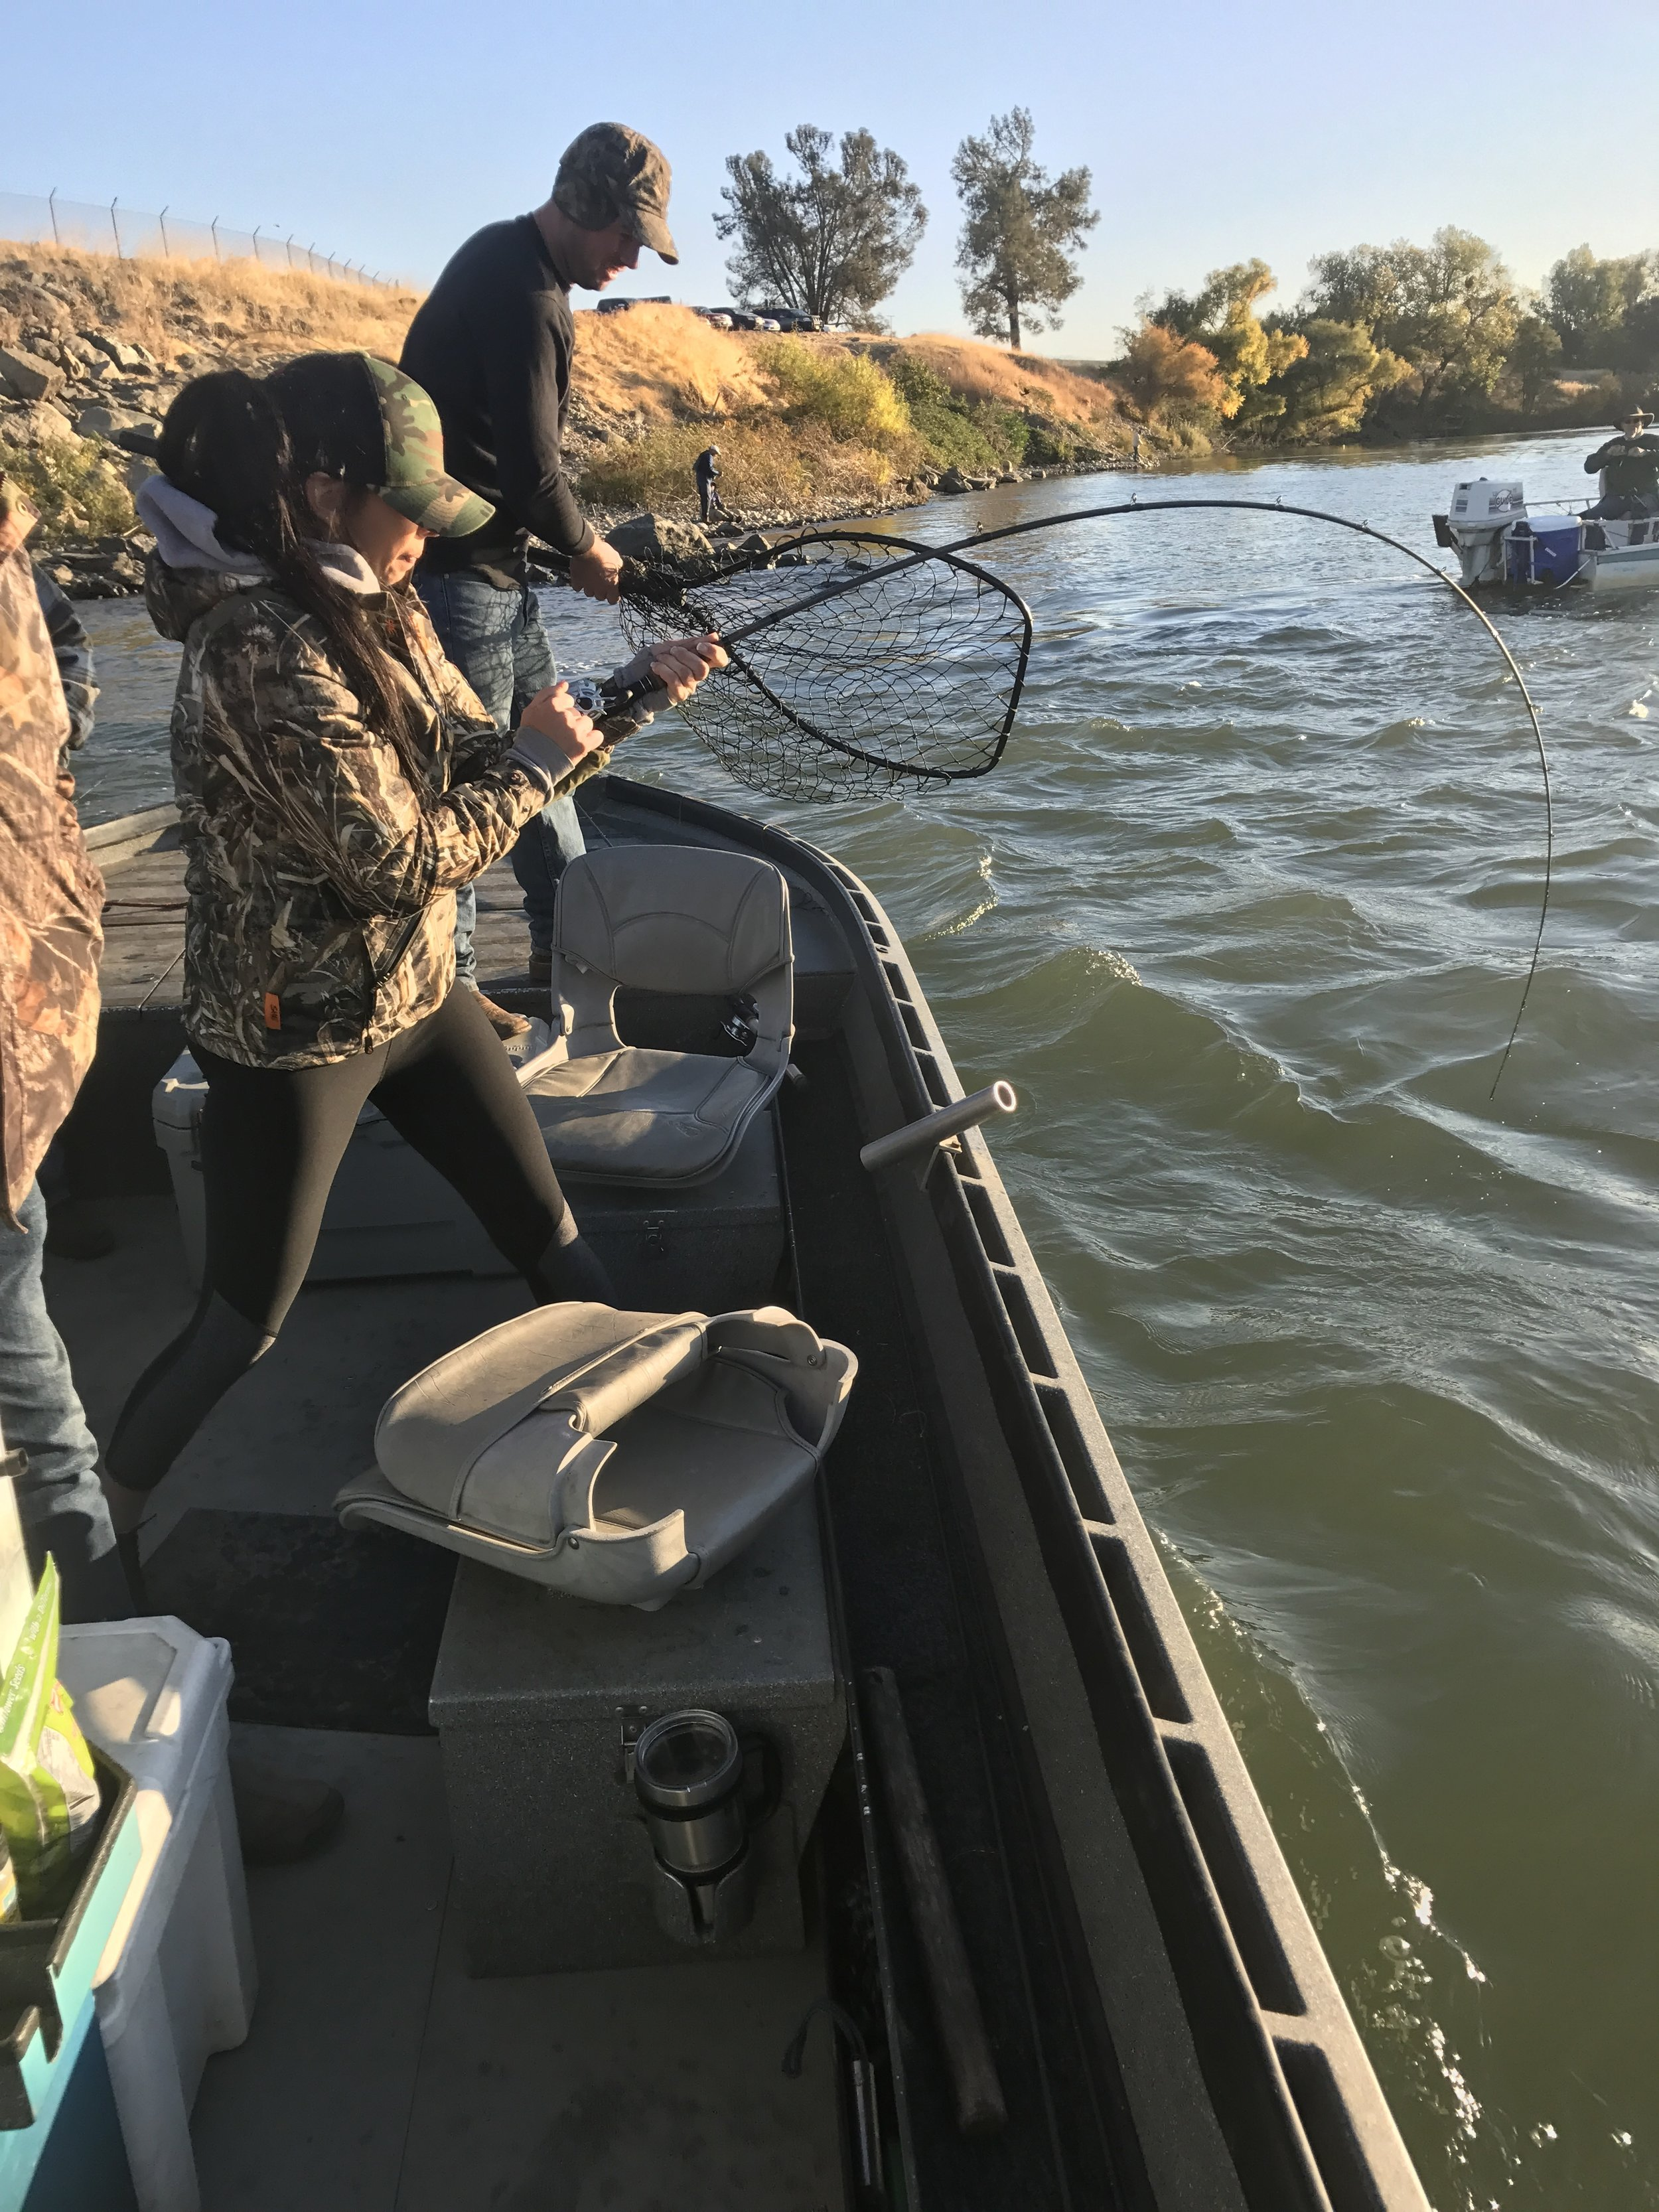 Jason Clack from Corning, Ca prepares to net a salmon that is being fought by Erica who hooked her salmon on a sardine wrapped Flatfish while fishing with Mike Rasmussen of Mike's Guide Service.